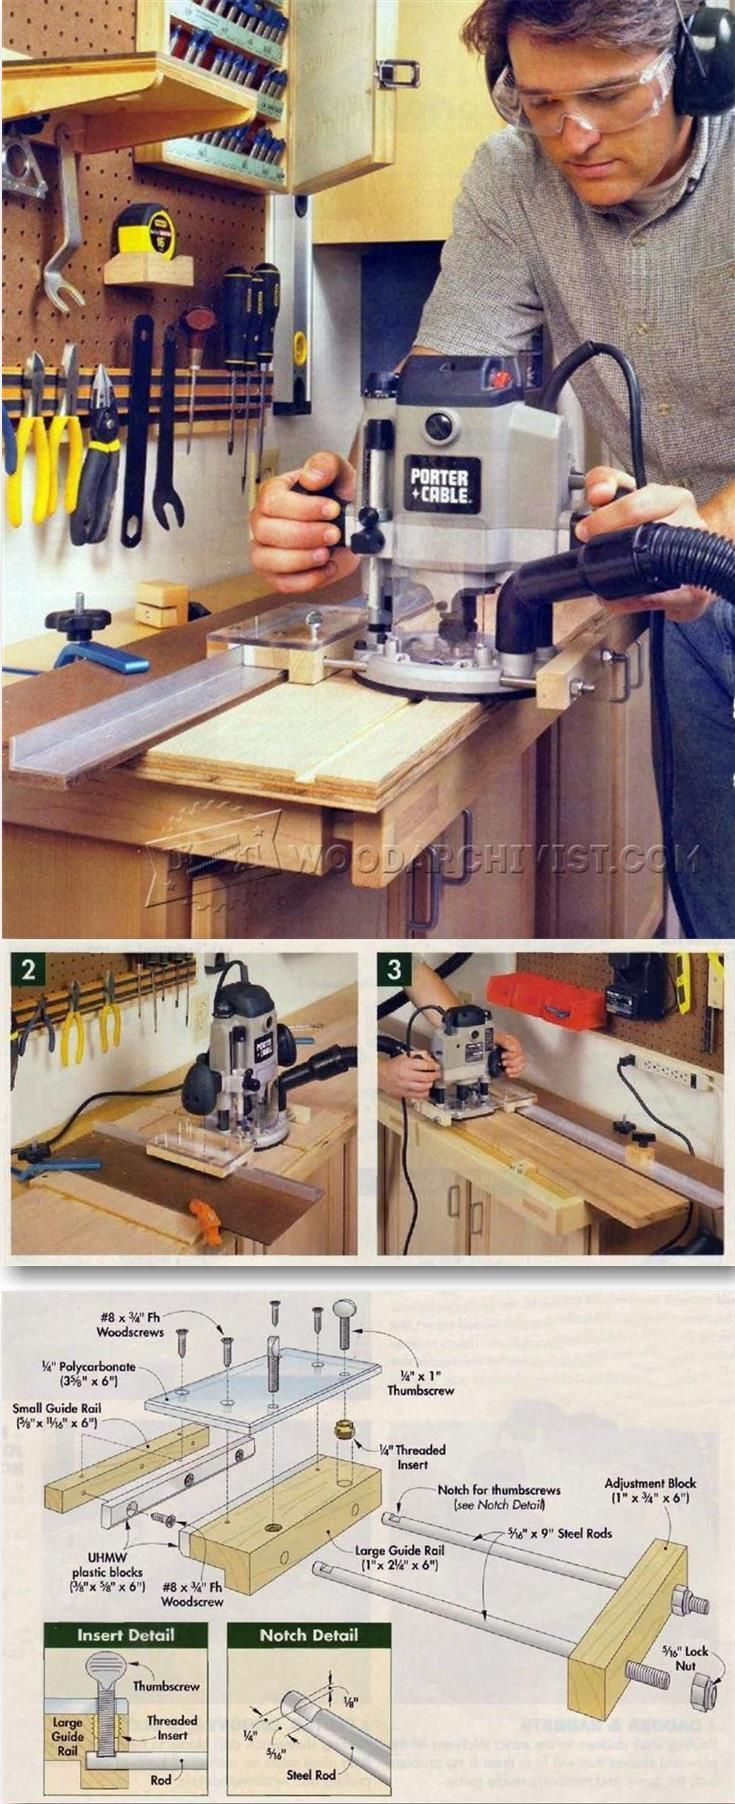 DIY Router Guide - Router Tips, Jigs and Fixtures   WoodArchivist.com